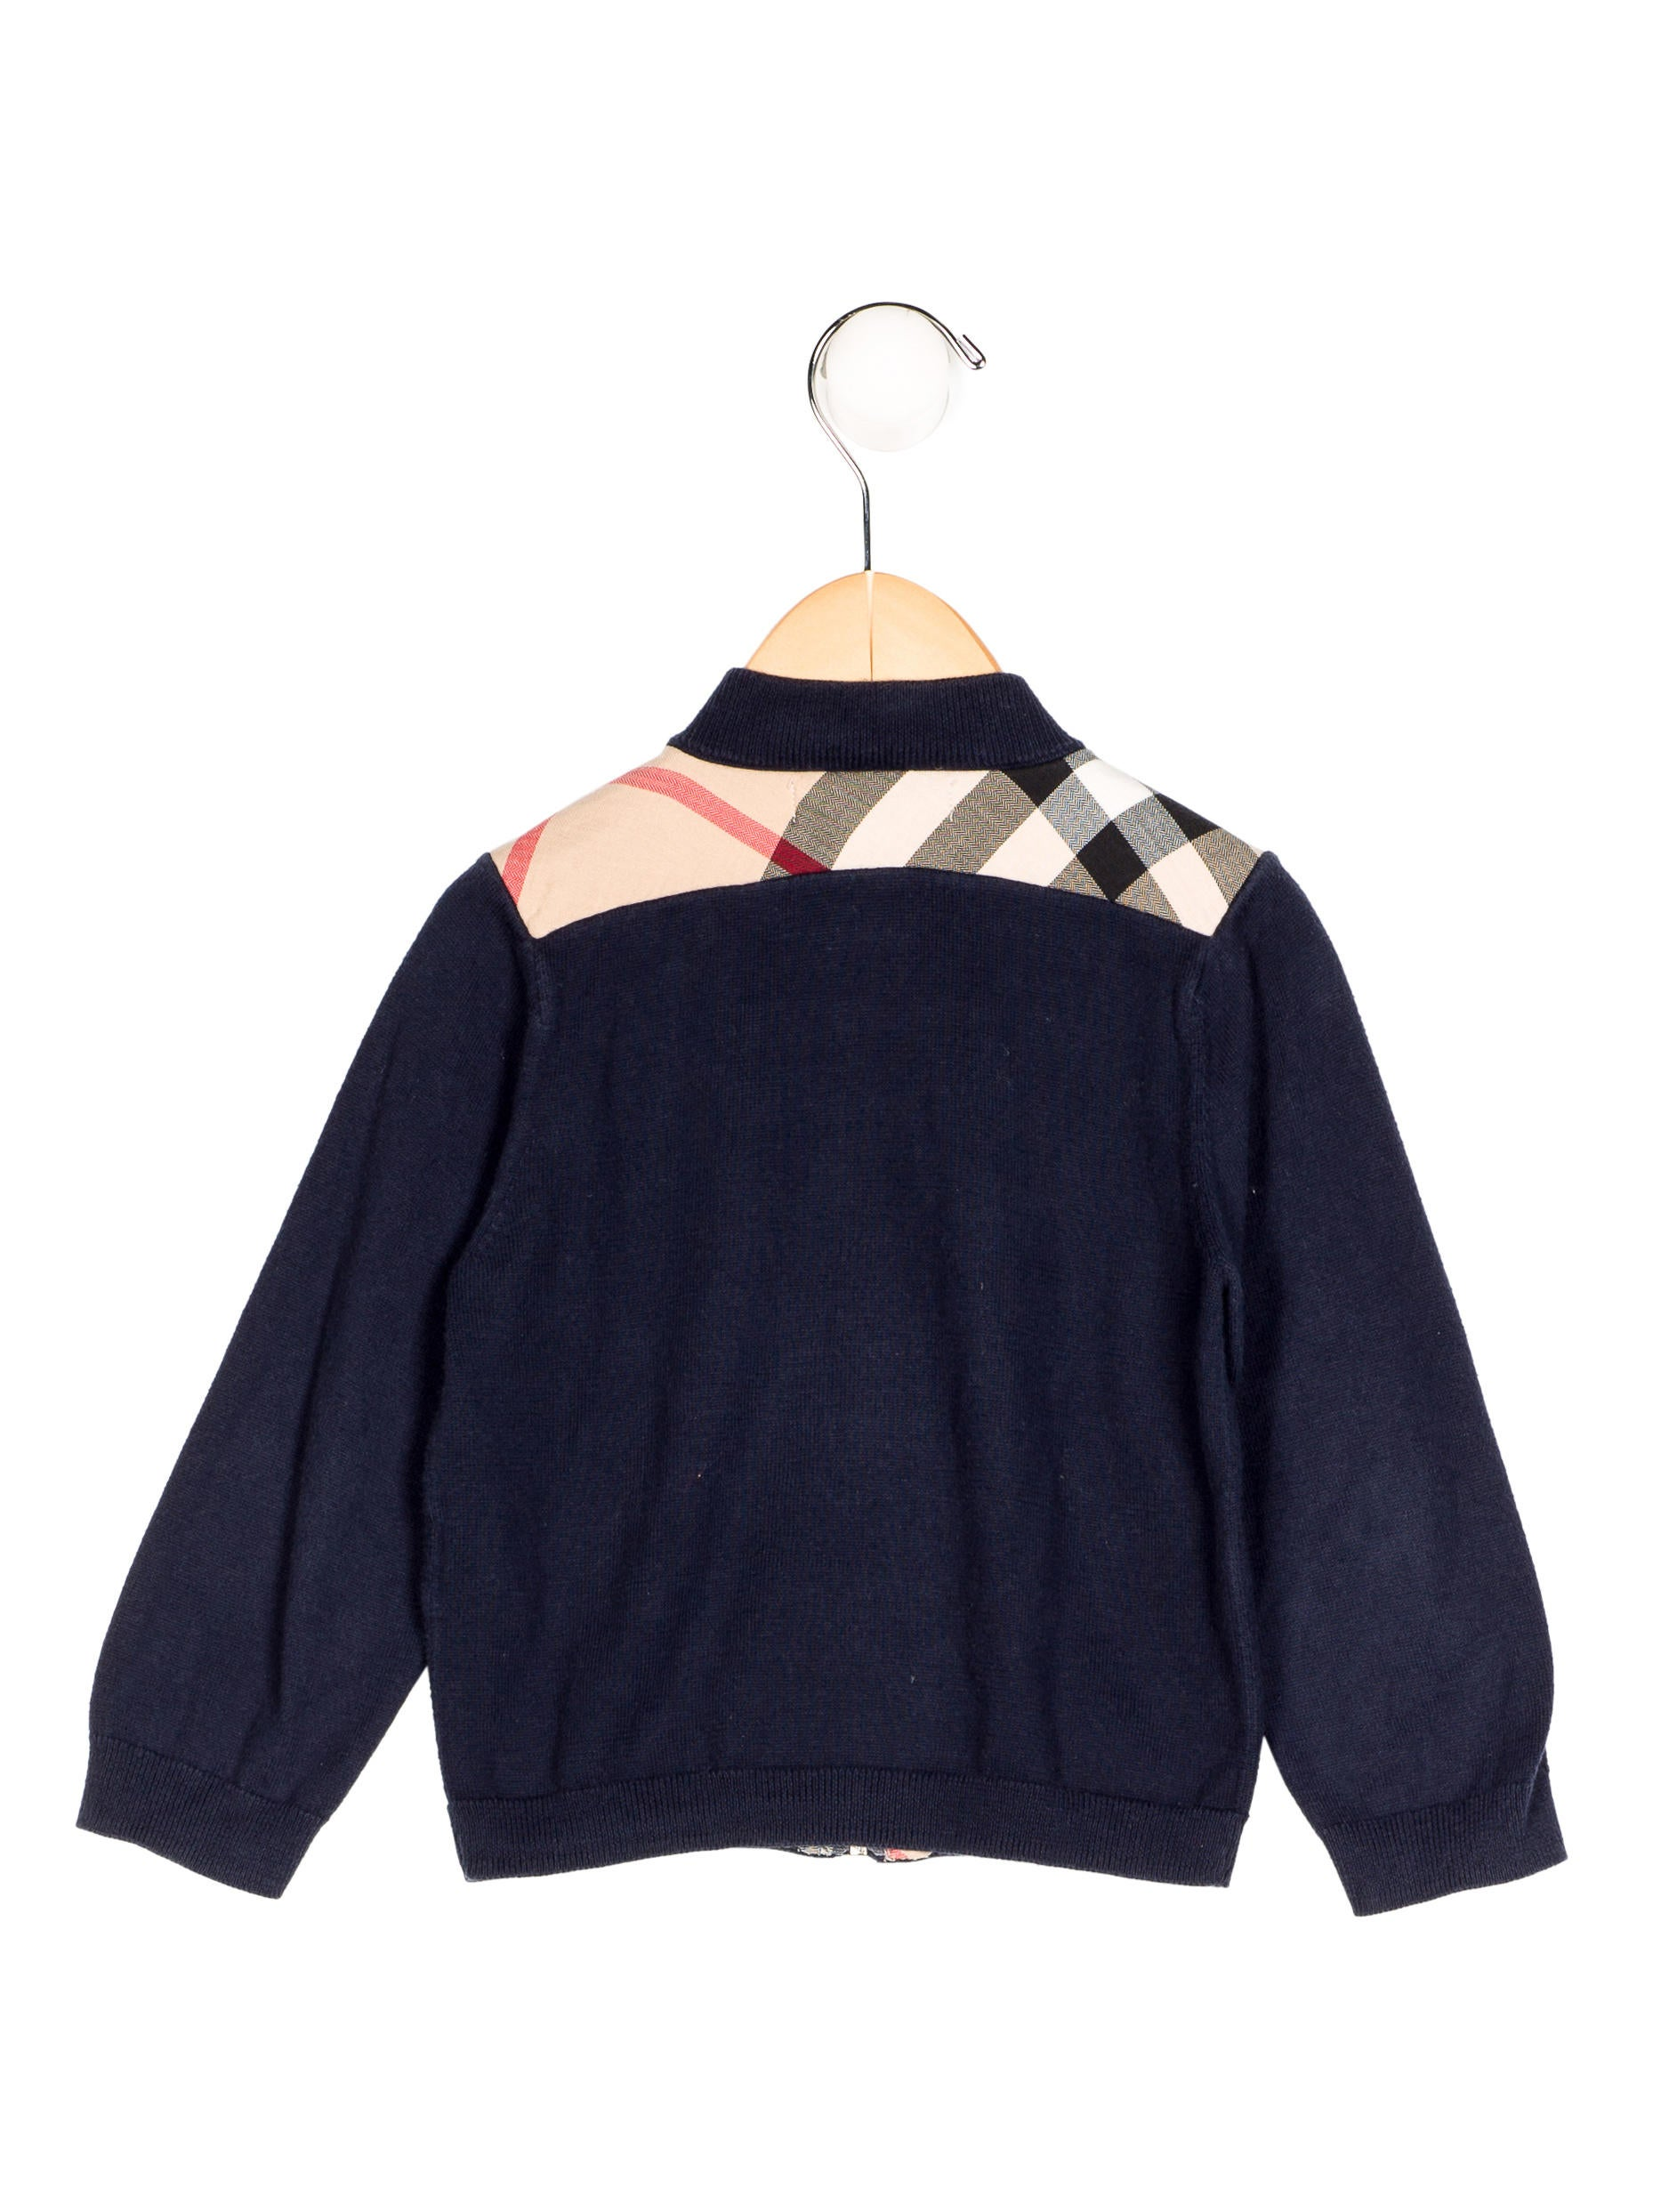 Boys Kids' Sweaters and Kids' Cardigans at Macy's come in a variety of styles and sizes. Shop Boys Kids' Sweaters and Kids' Cardigans at Macy's and find the latest styles for your little one today. Free Shipping Available.